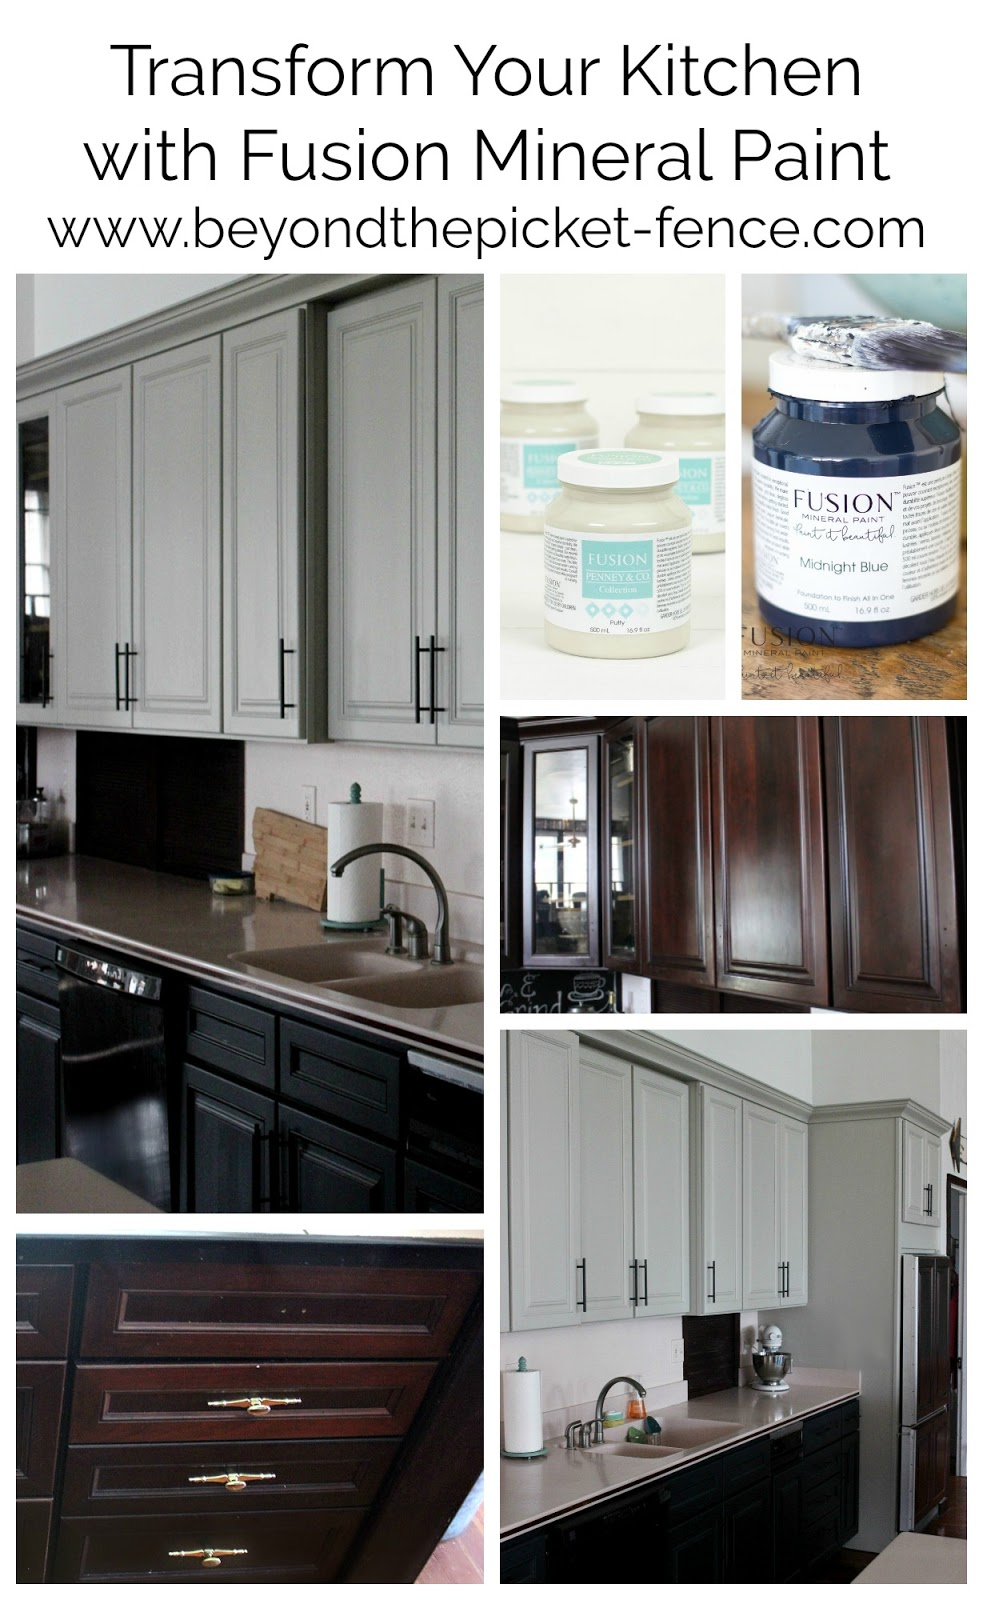 Beyond The Picket Fence: Fusion Mineral Paint Giveaway